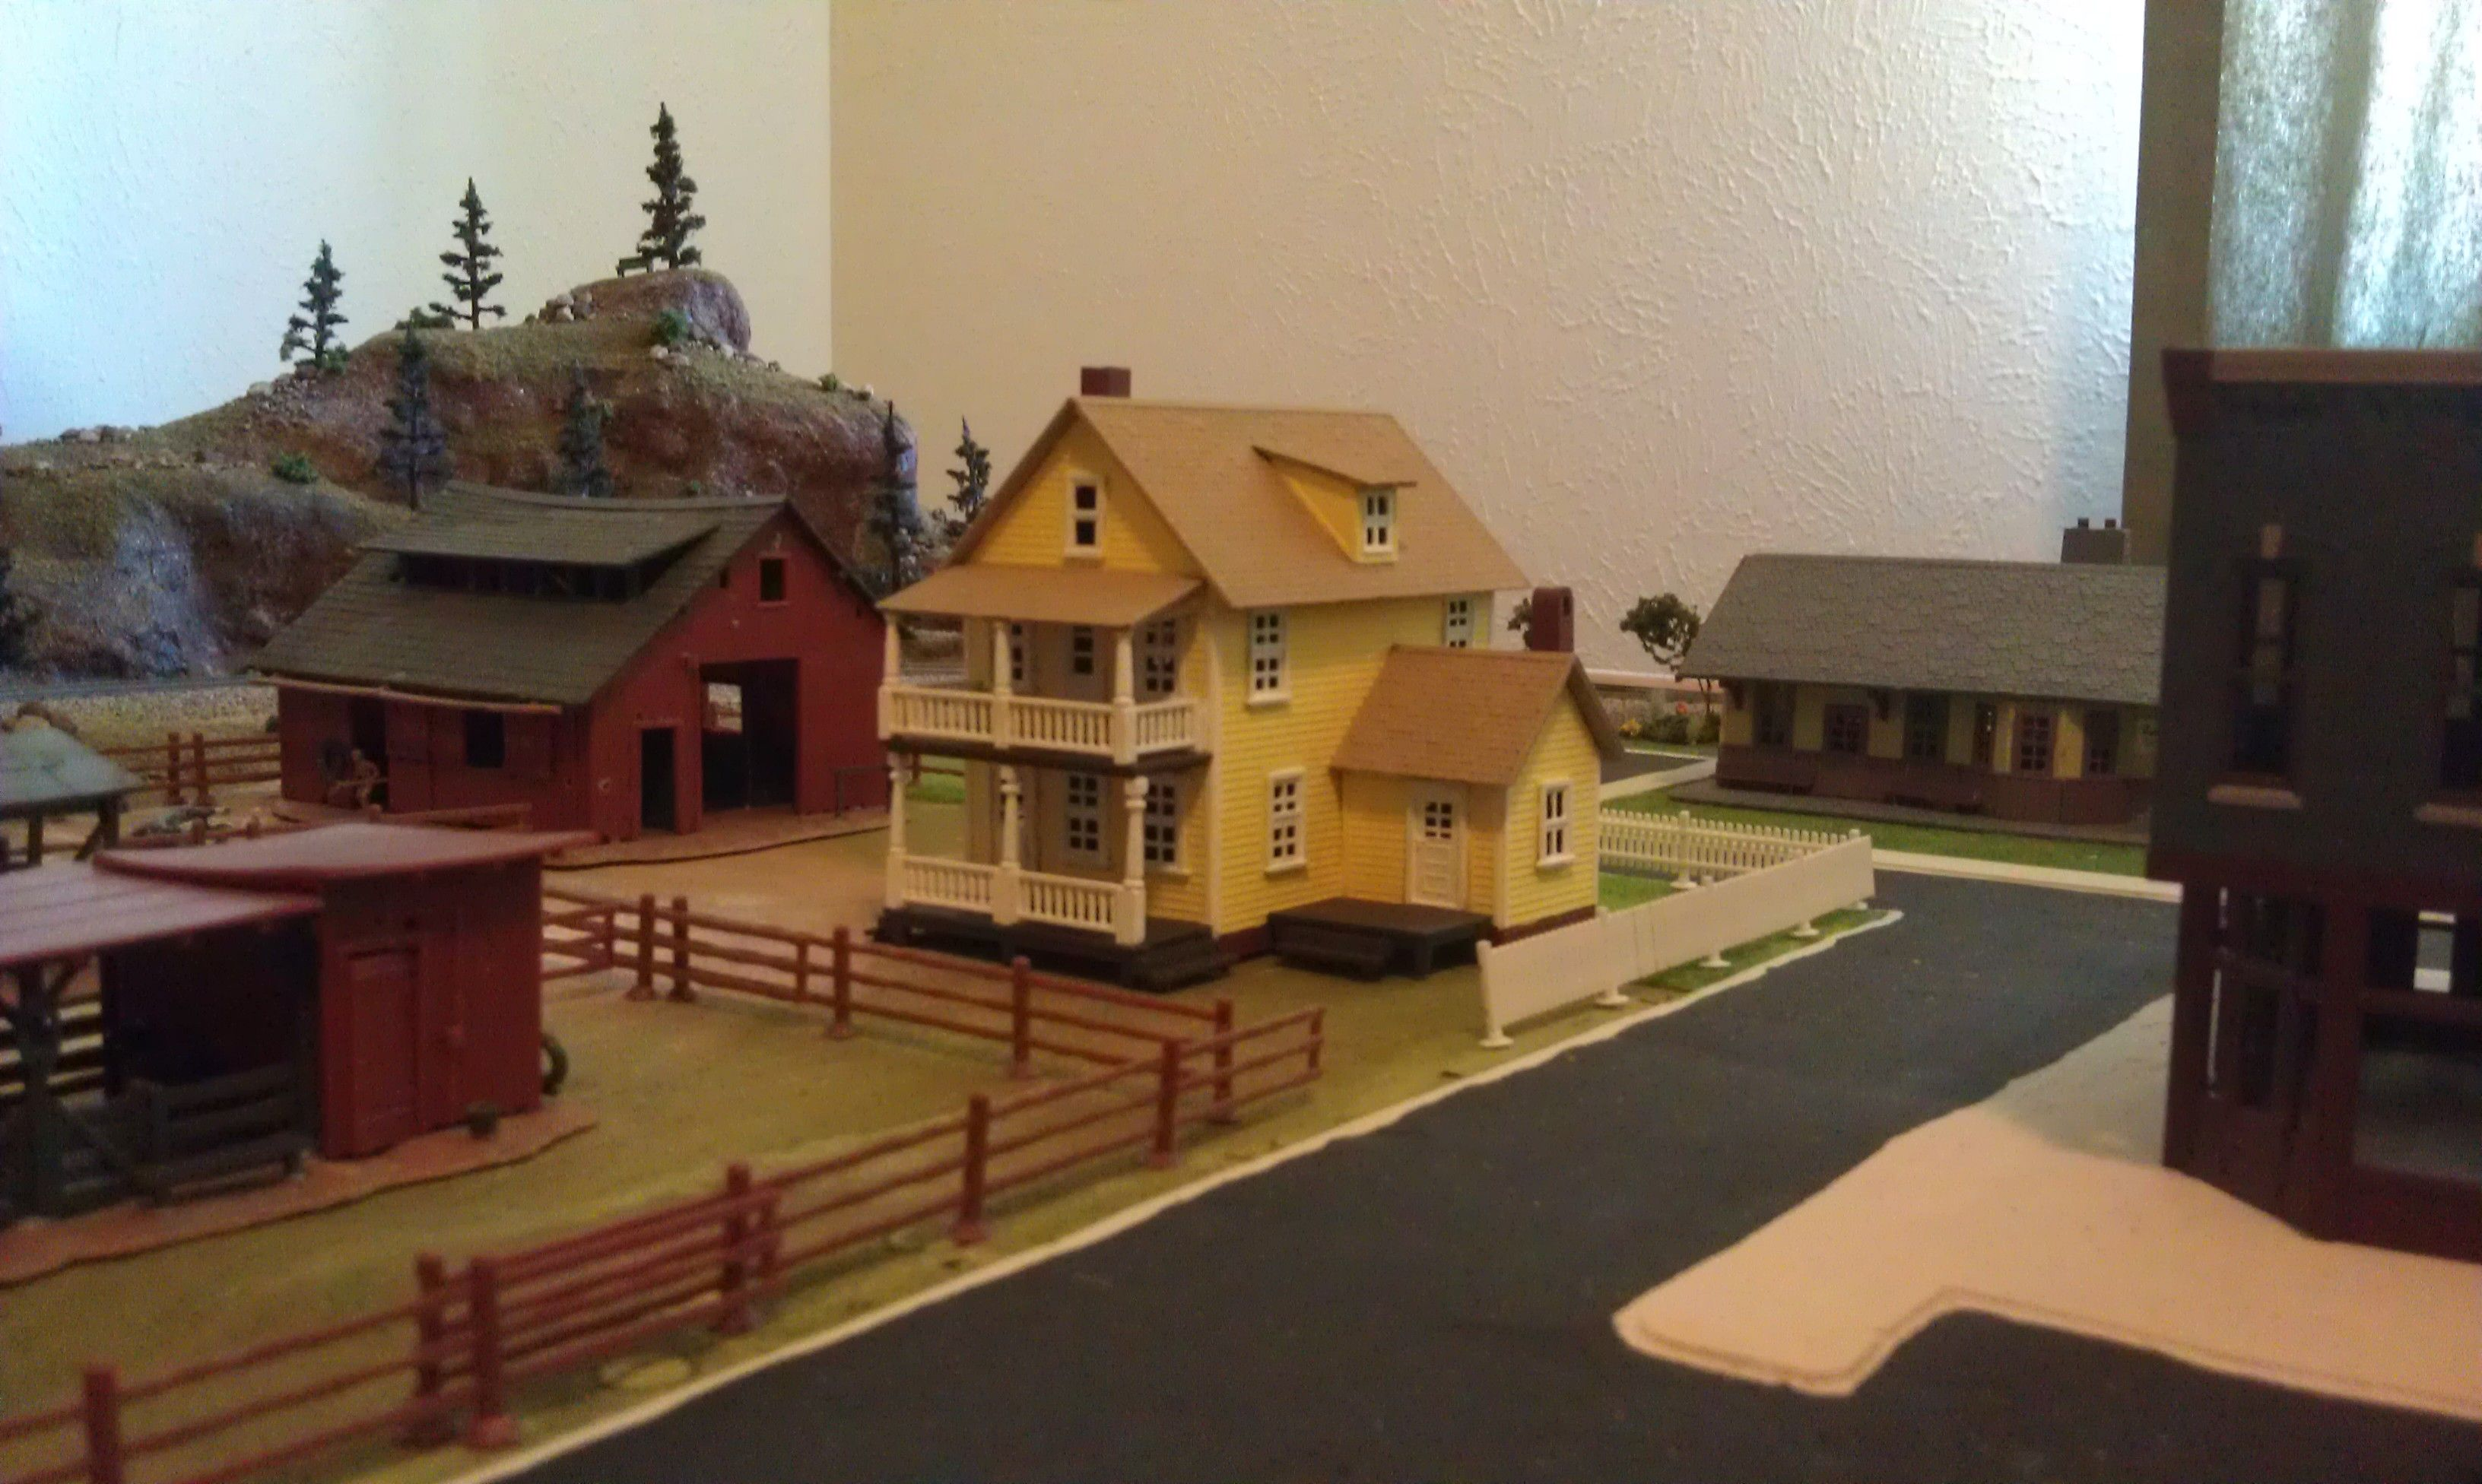 Whittemore HO Scale Train Table - Farm Layout Farm House Painted - Aug 2012